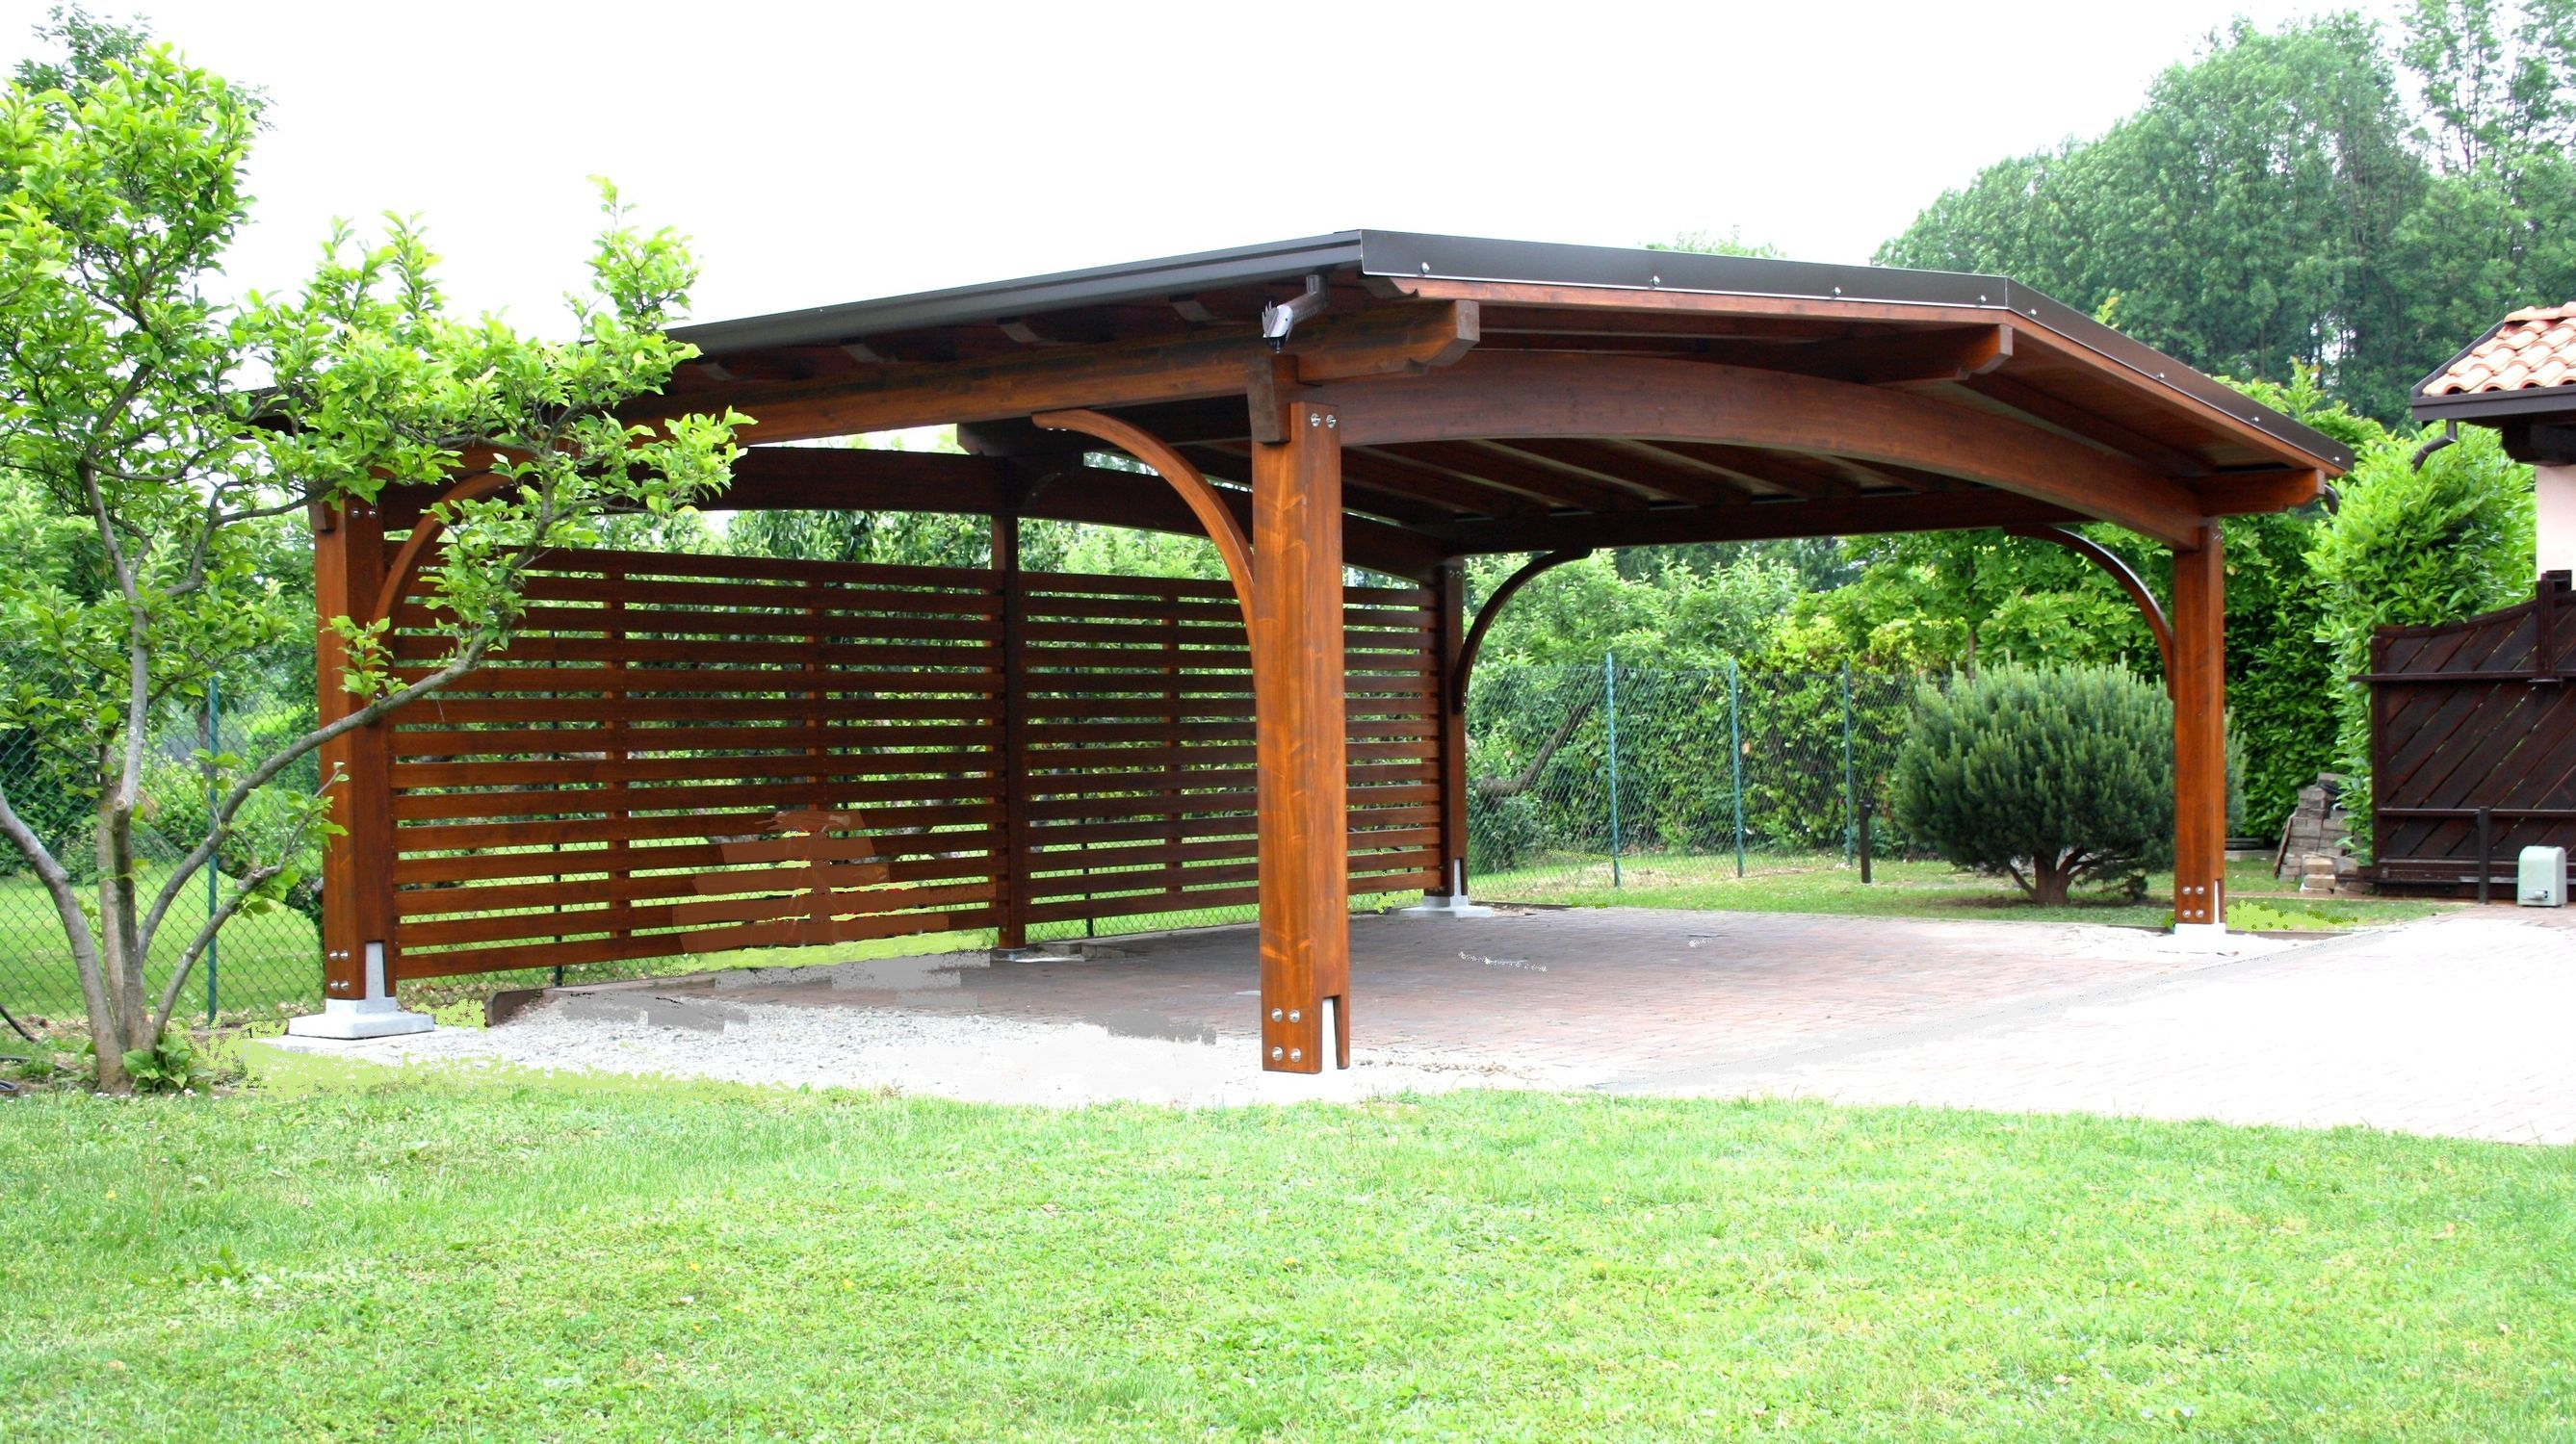 Wood carports wooden carport arco gazebodesign for Modern carport designs plans